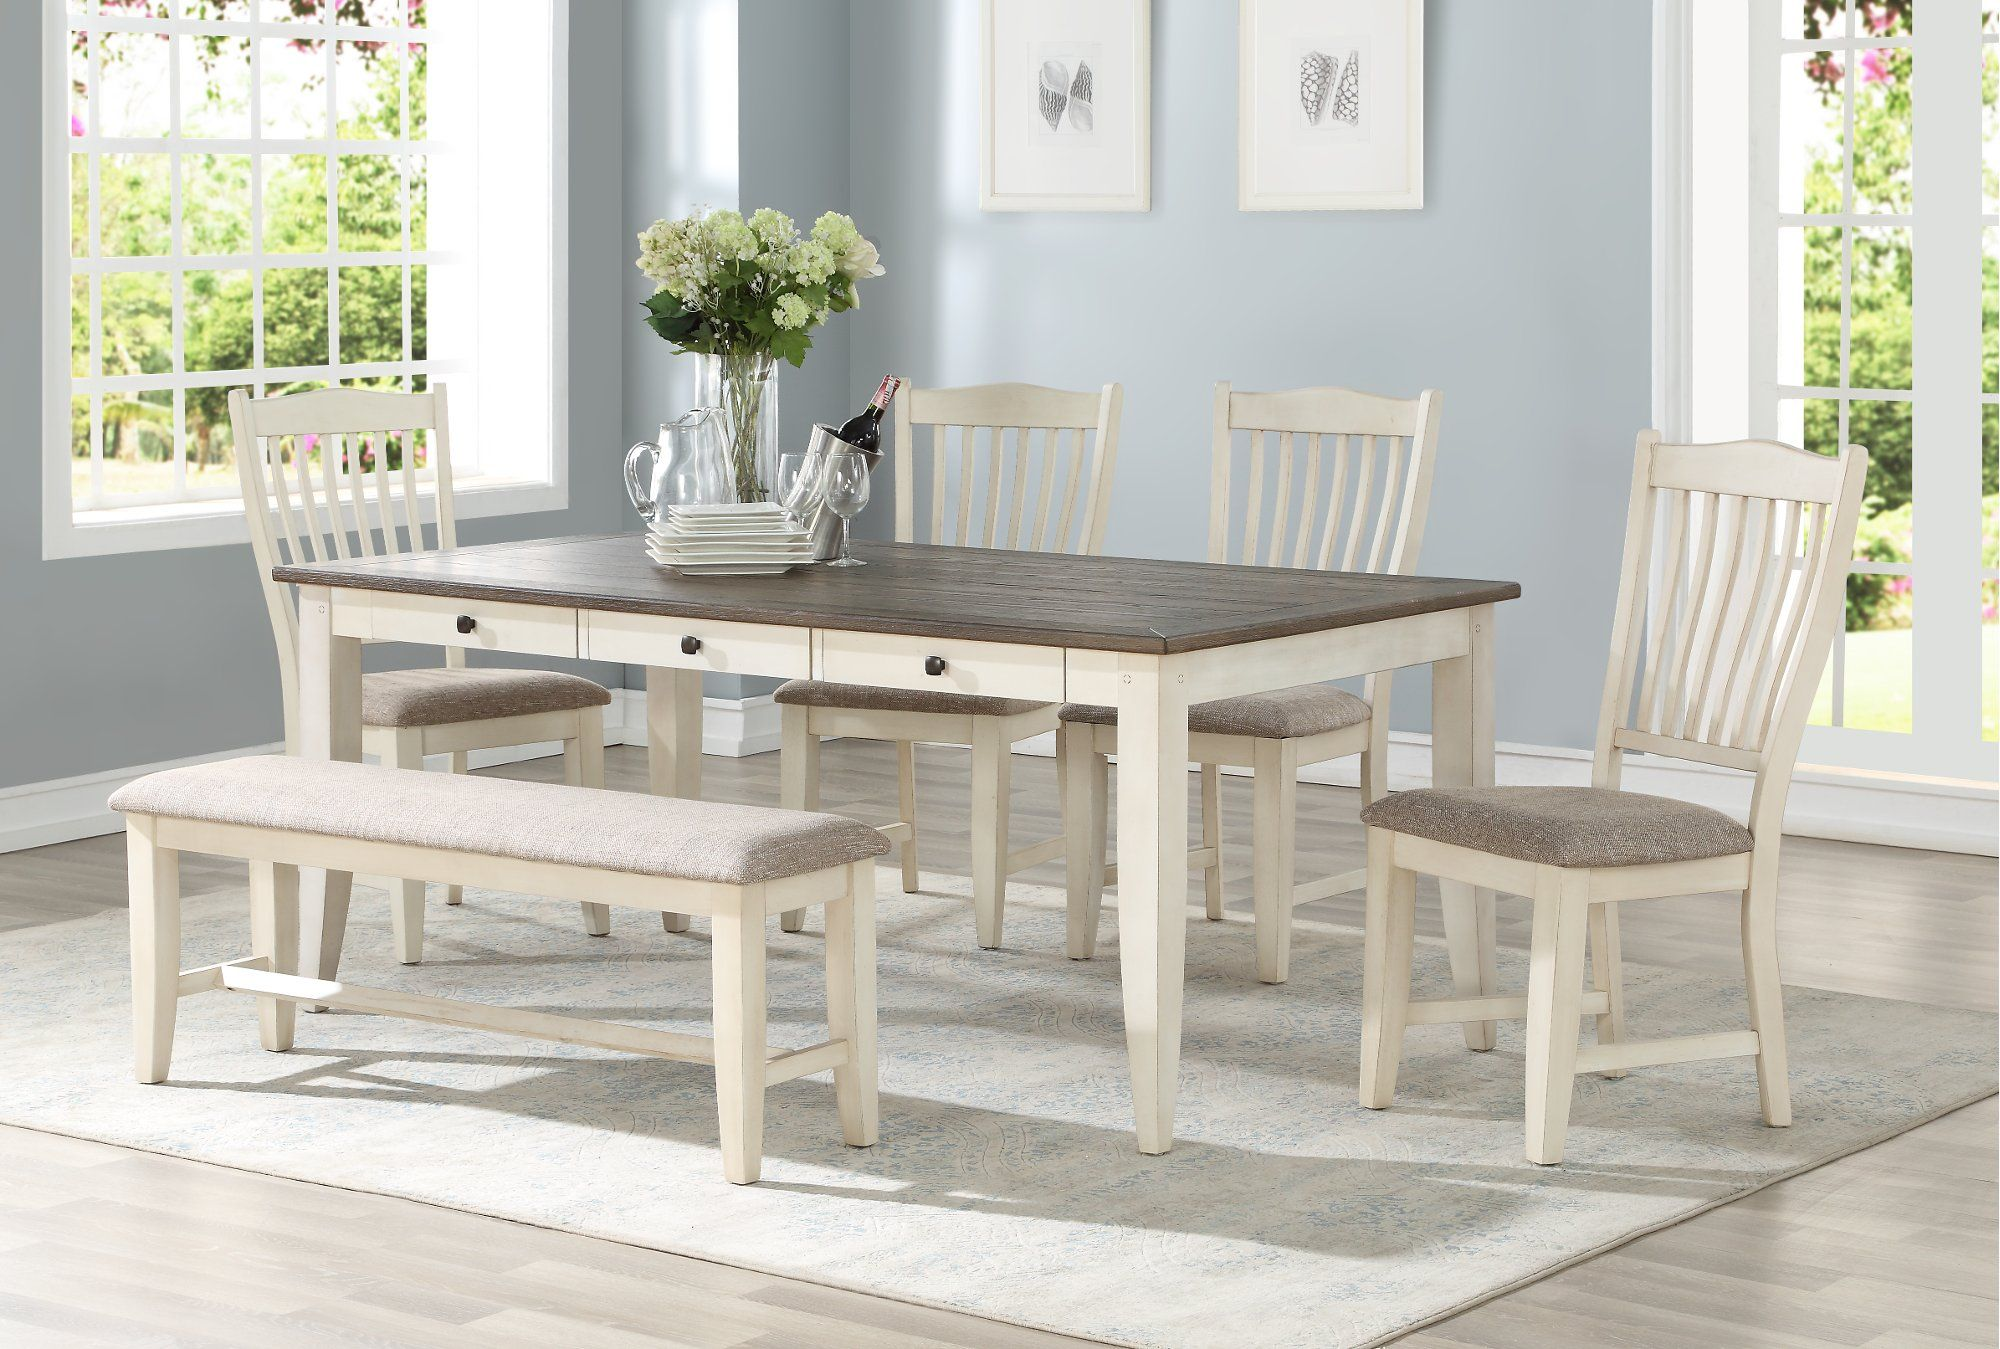 white and gray 5 piece dining set grace in 2019 new house rh pinterest com